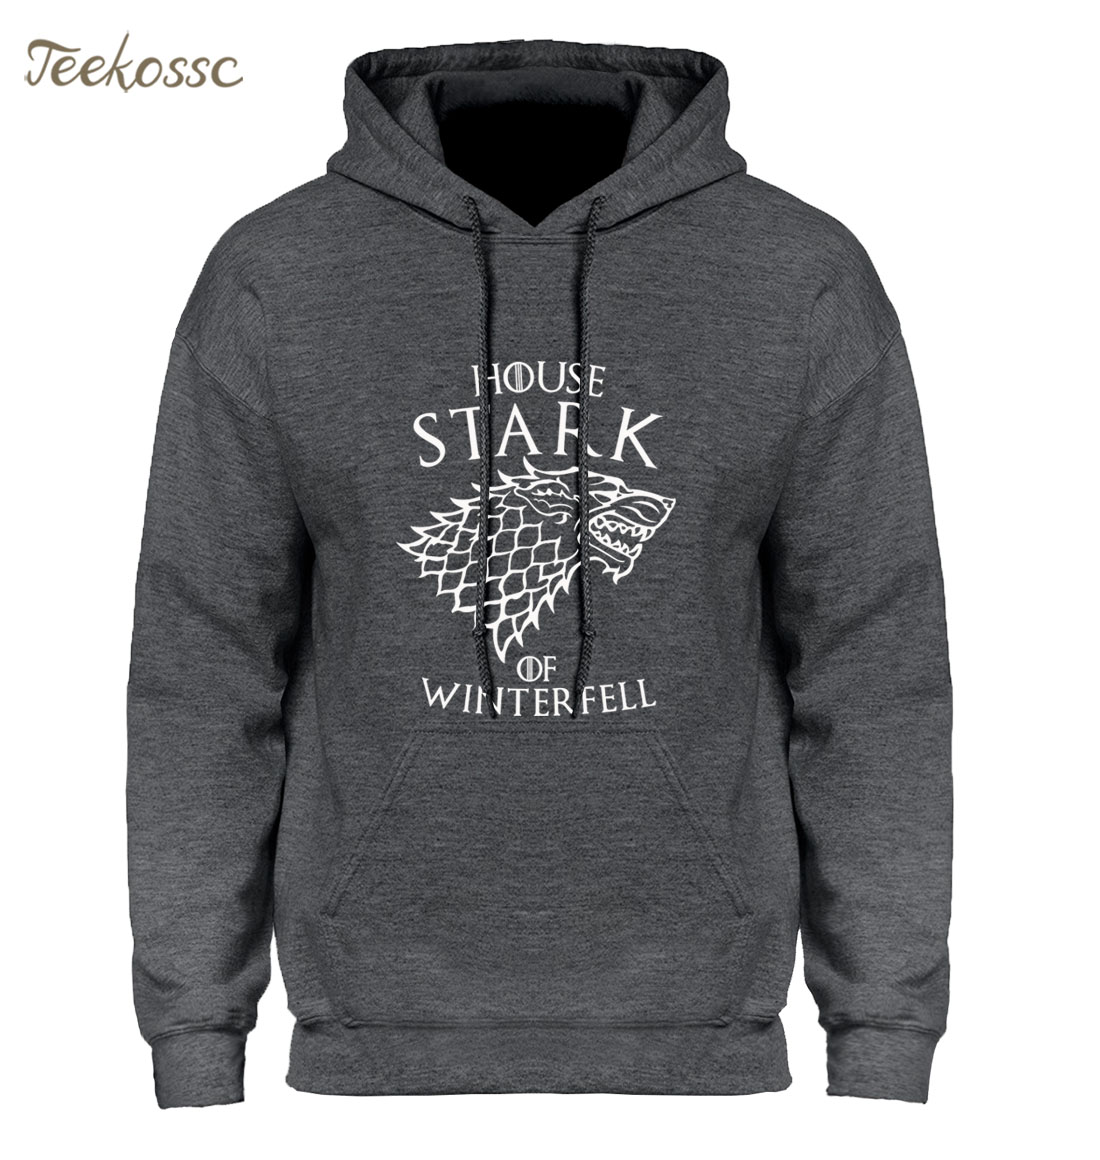 "Game of Thrones Hoodie Men ""House Stark of Winterfell"" Graphic Design Hoodies Mens 2018 Winter Brand Hip Hop Hooded Sweatshirt"